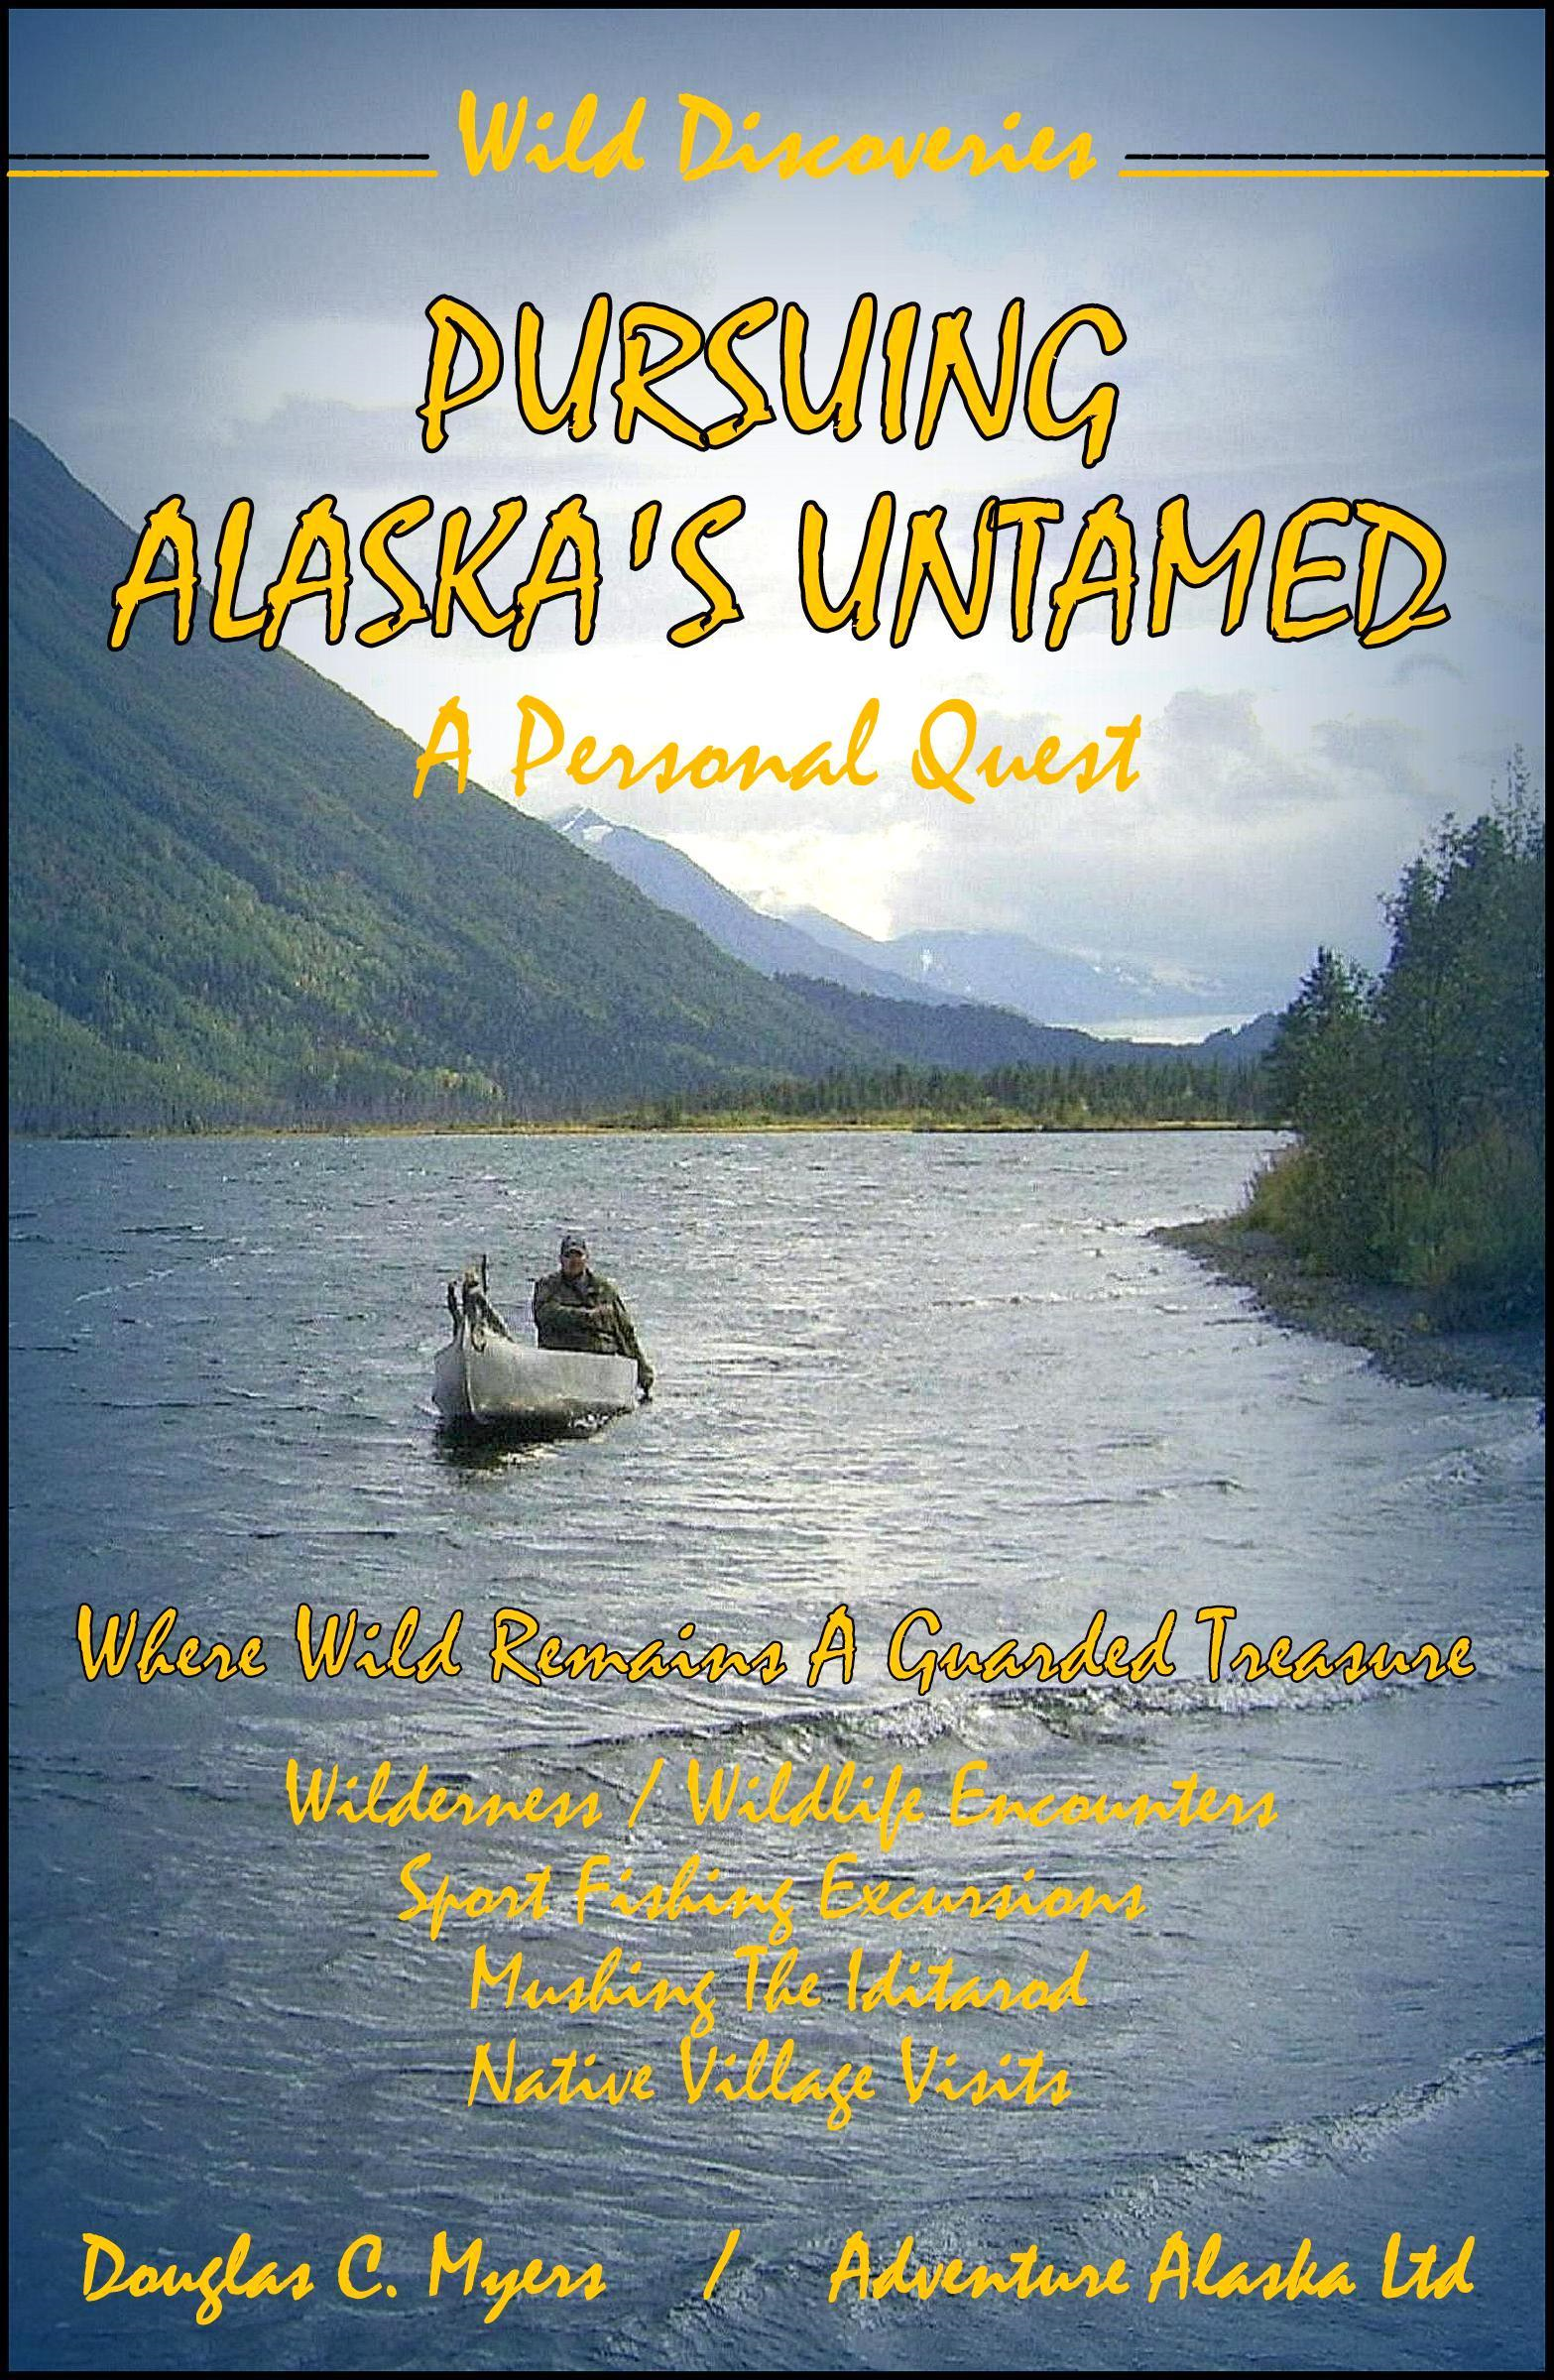 Pursuing Alaska's Untamed